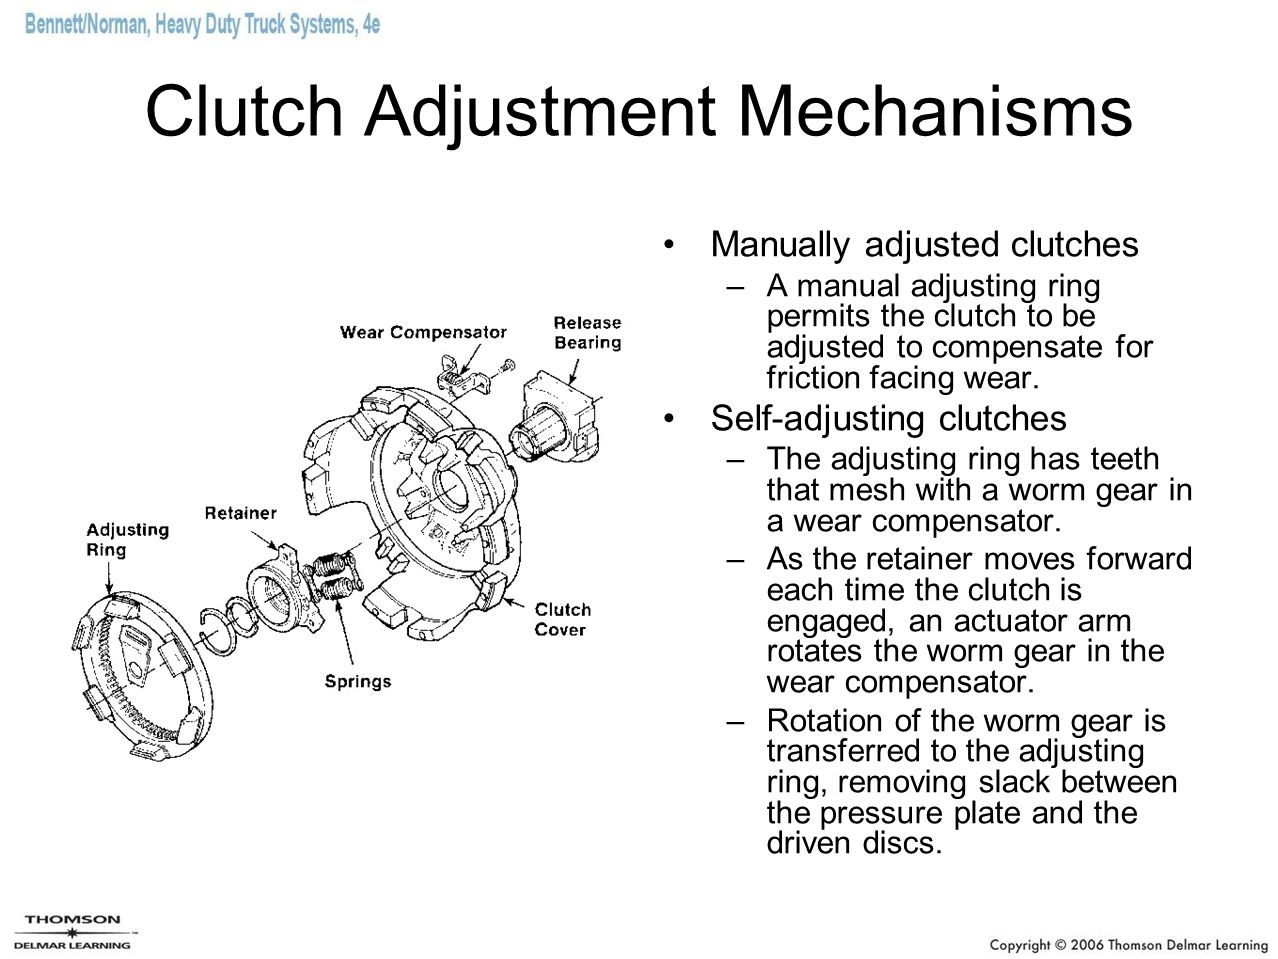 Clutch Adjustment Mechanisms